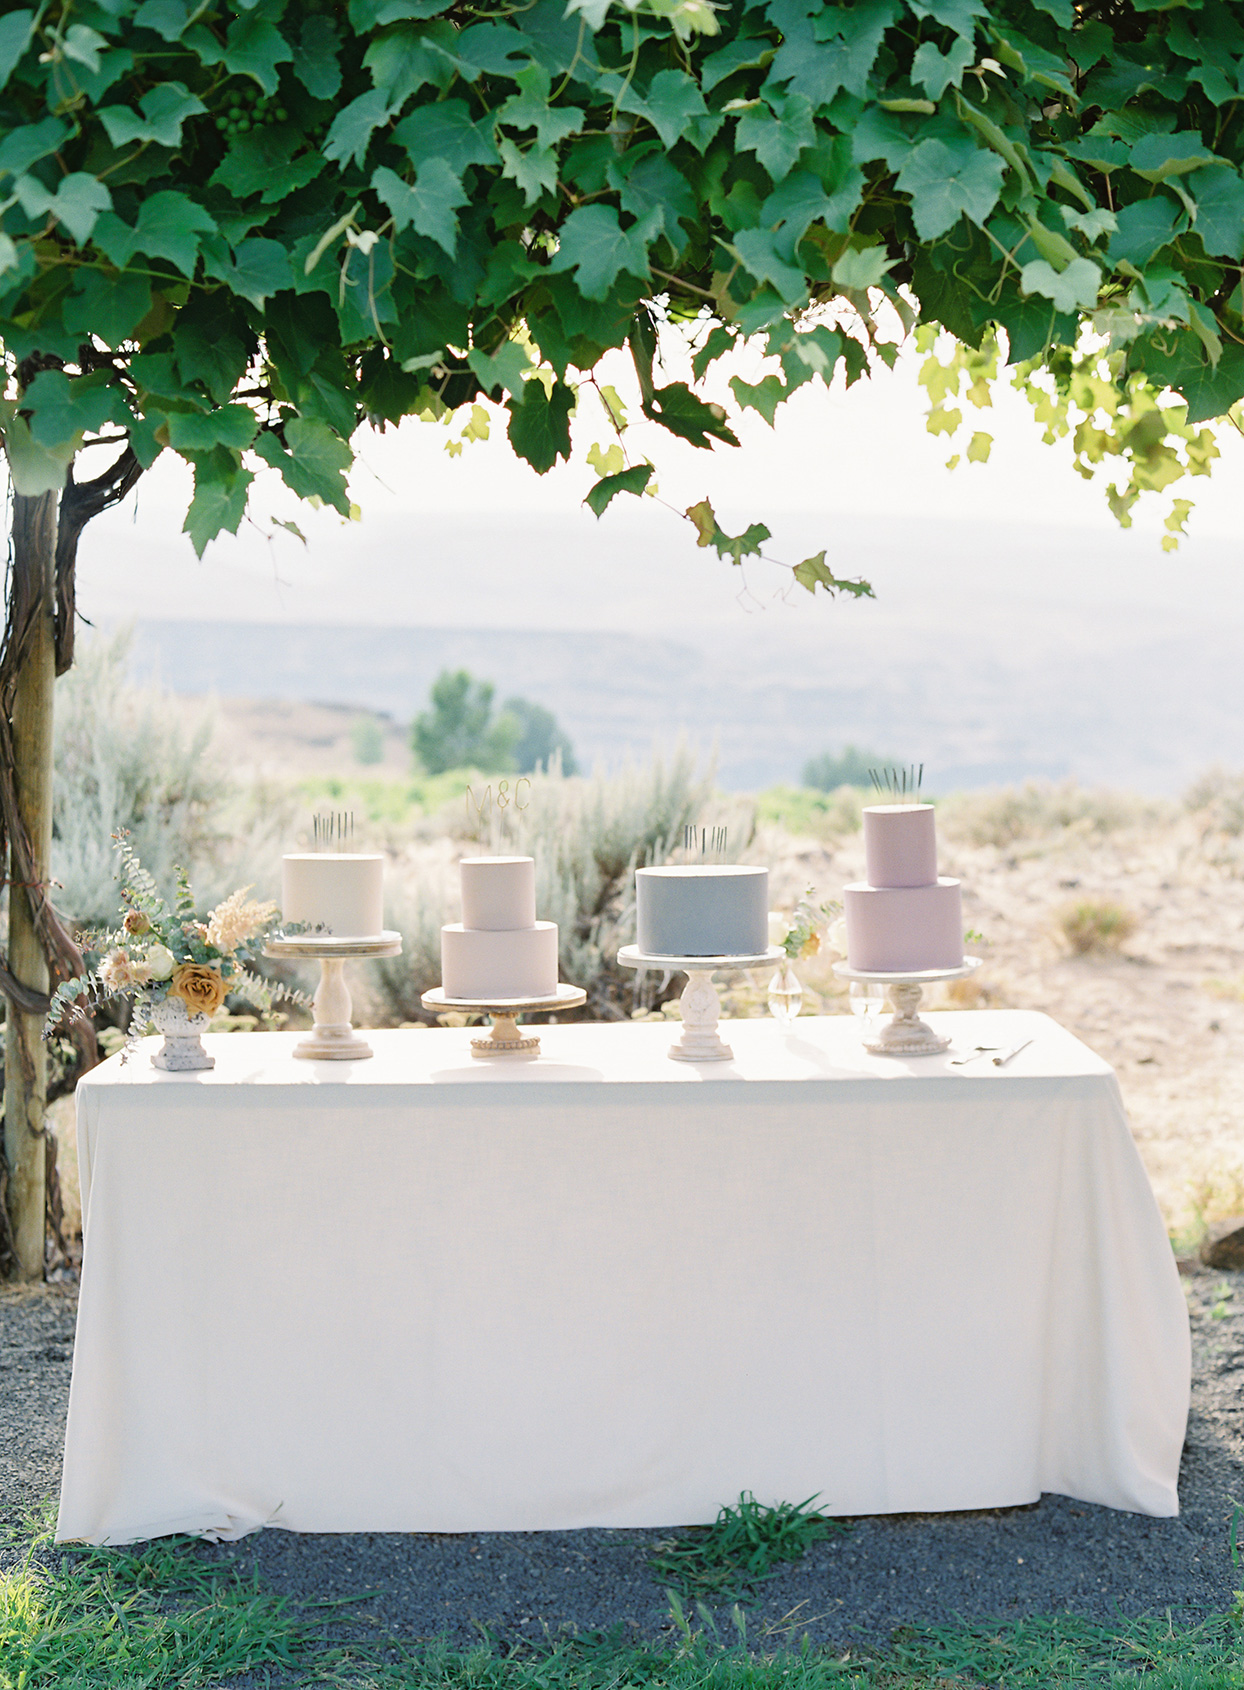 micaela curtis wedding cakes on white linen table